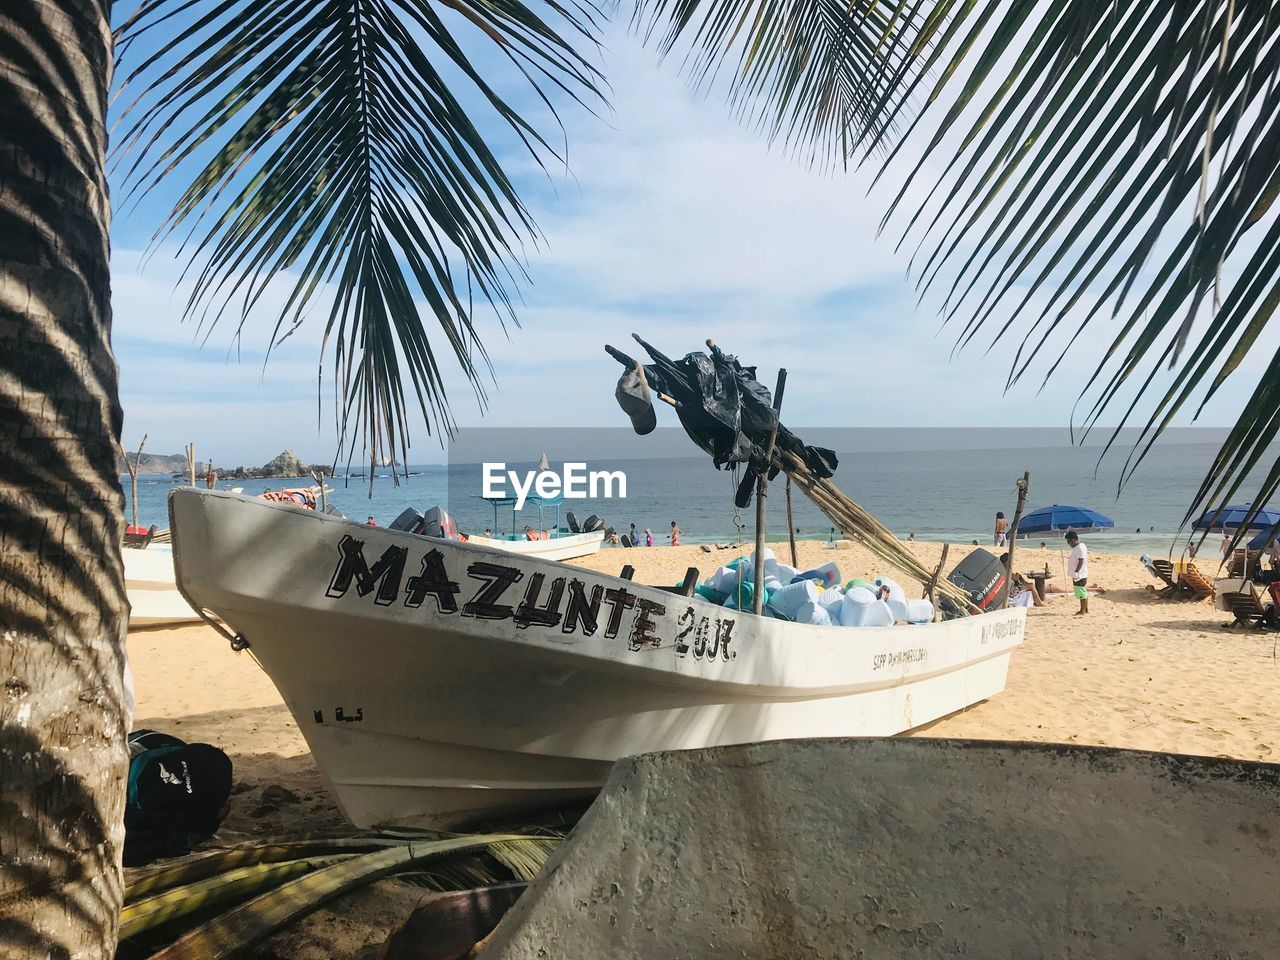 sea, water, nautical vessel, palm tree, mode of transportation, beach, transportation, sky, tree, tropical climate, nature, land, moored, day, plant, sand, incidental people, horizon over water, outdoors